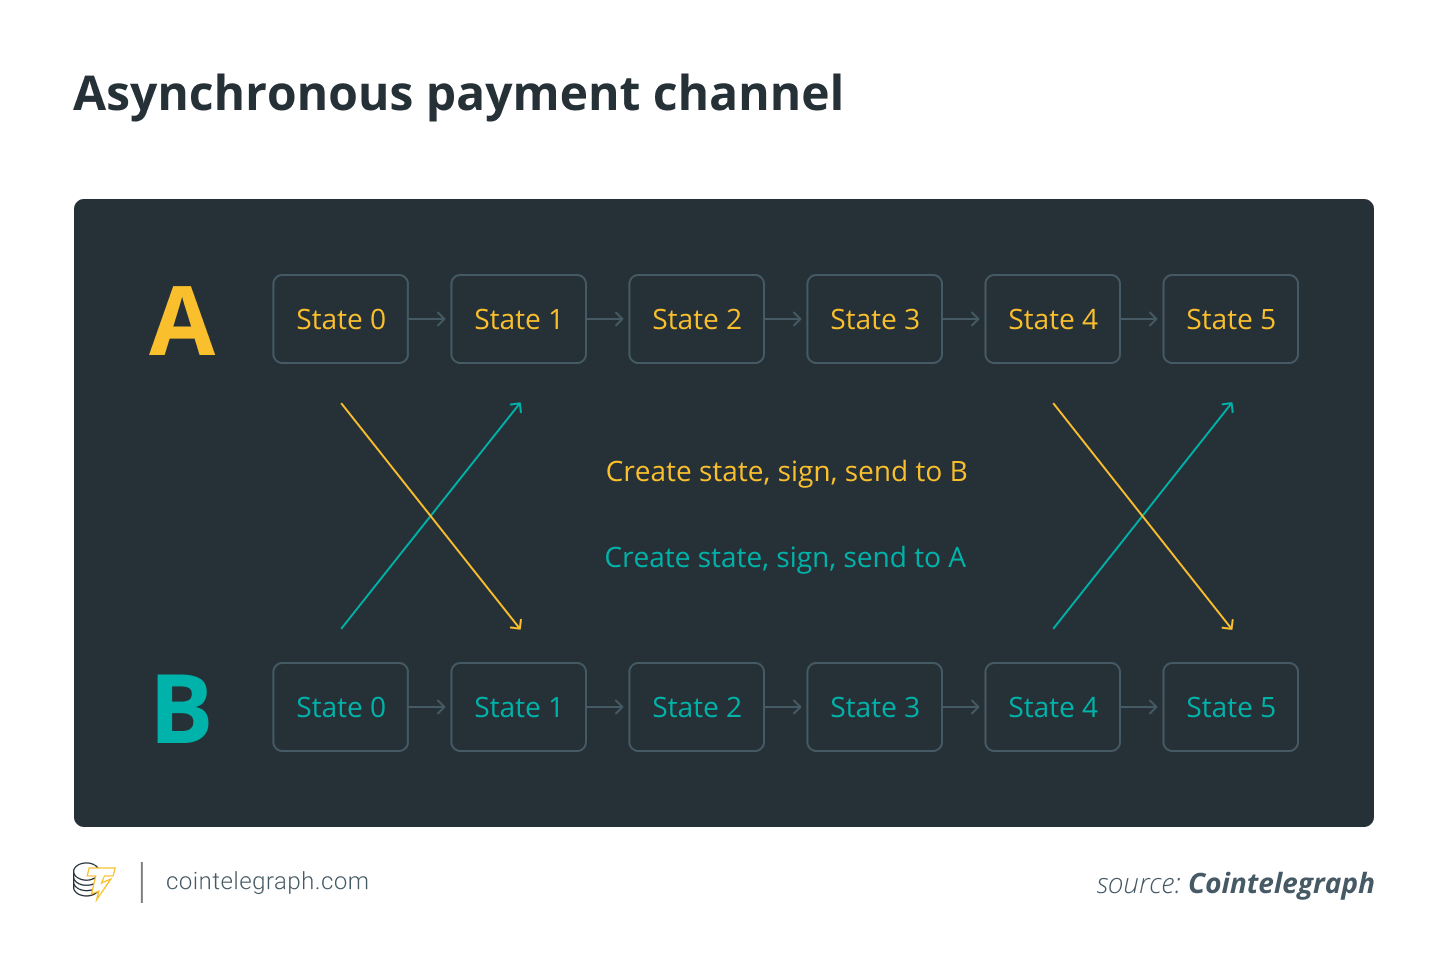 An off-chain transaction from Party A to Party B through an asynchronous payment channel